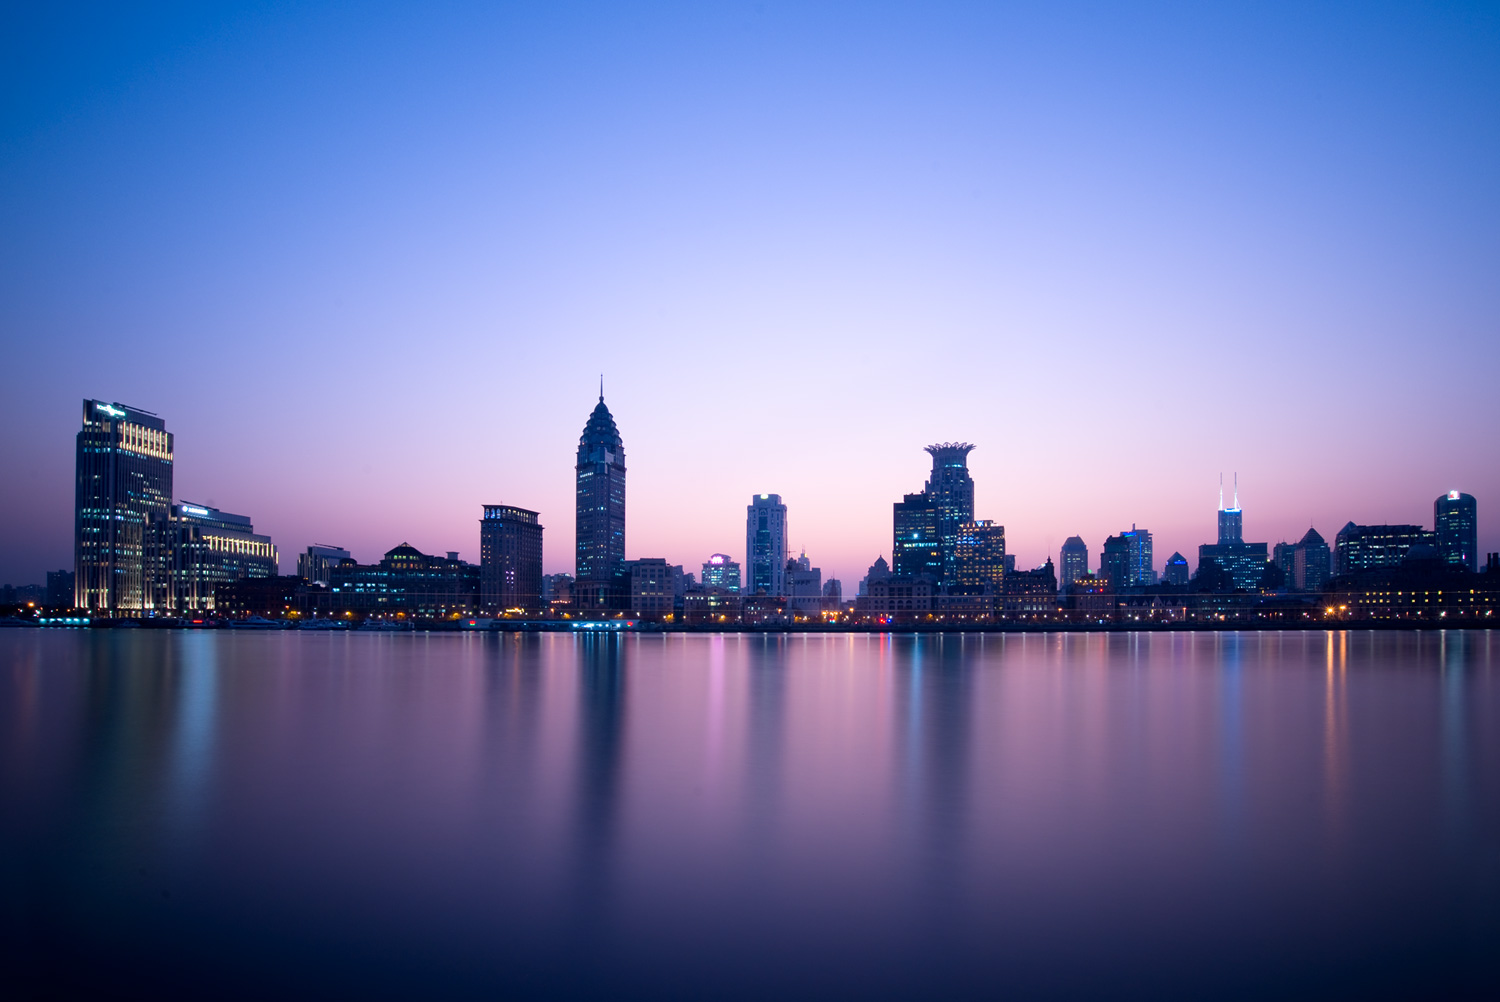 Shanghai - Using Neutral Density Filters for Cityscape Photography at Blue Hour